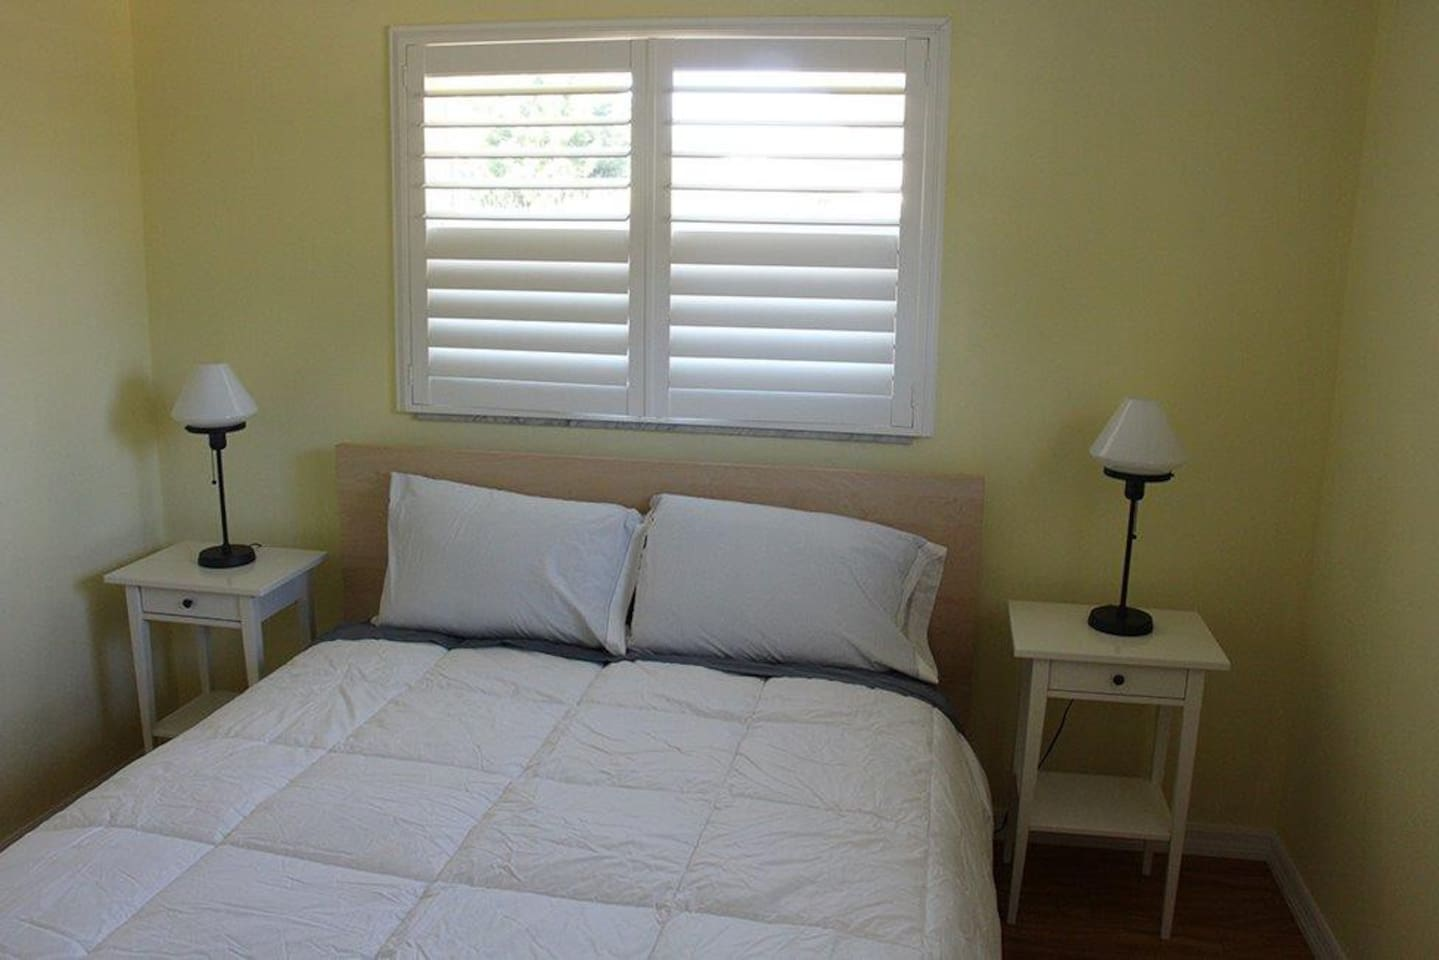 Queen bed. Window treatments that enable occupant to control the light in the room.